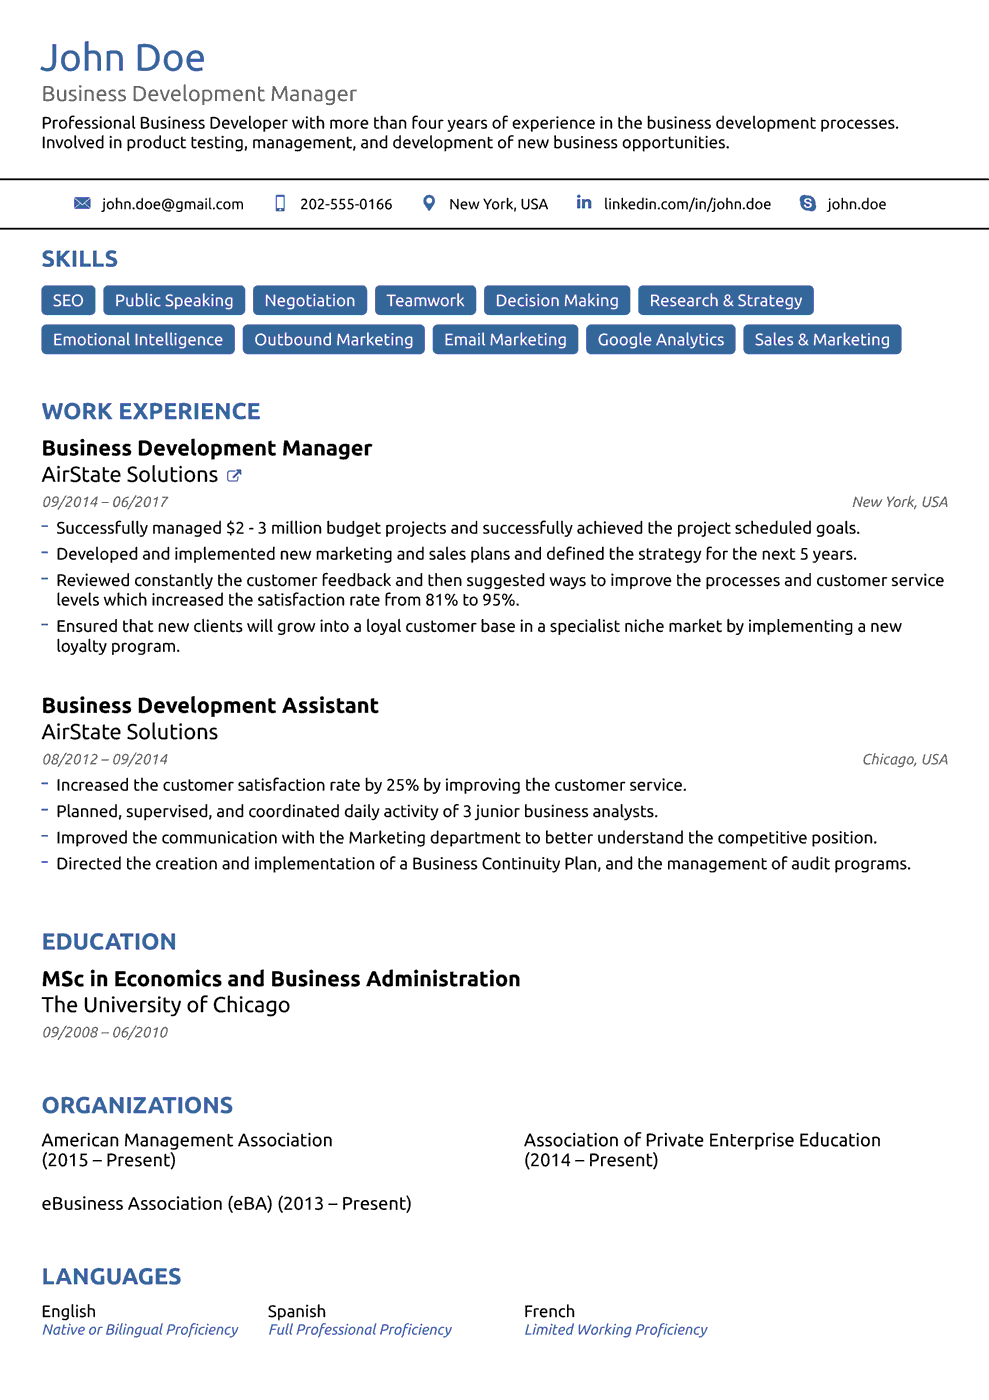 simple resume templates 8 best resume templates of 2018 amp customize 24878 | basic resume template